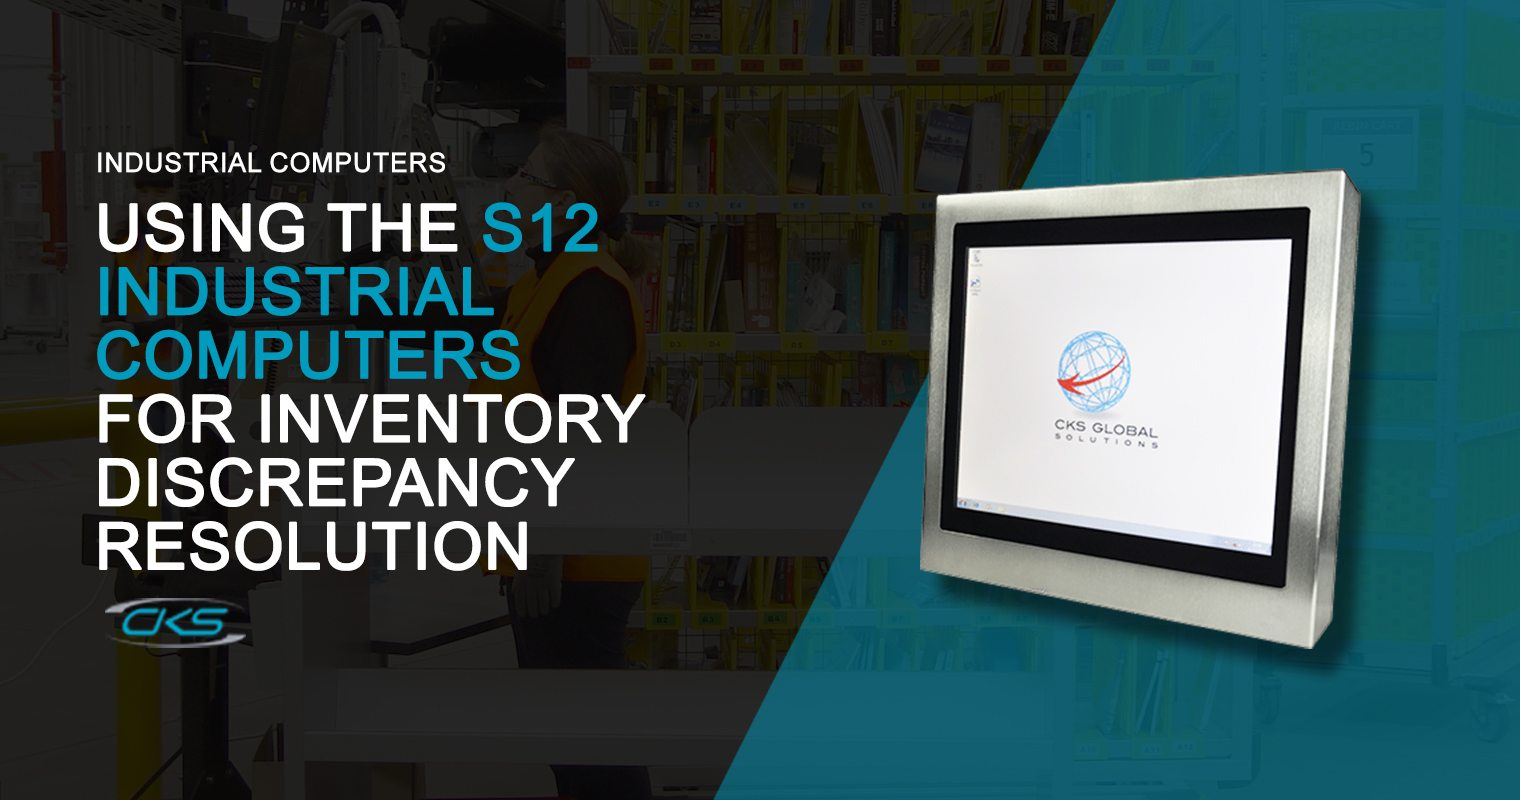 Resolving Inventory Discrepancies Using the S12 Industrial PCs